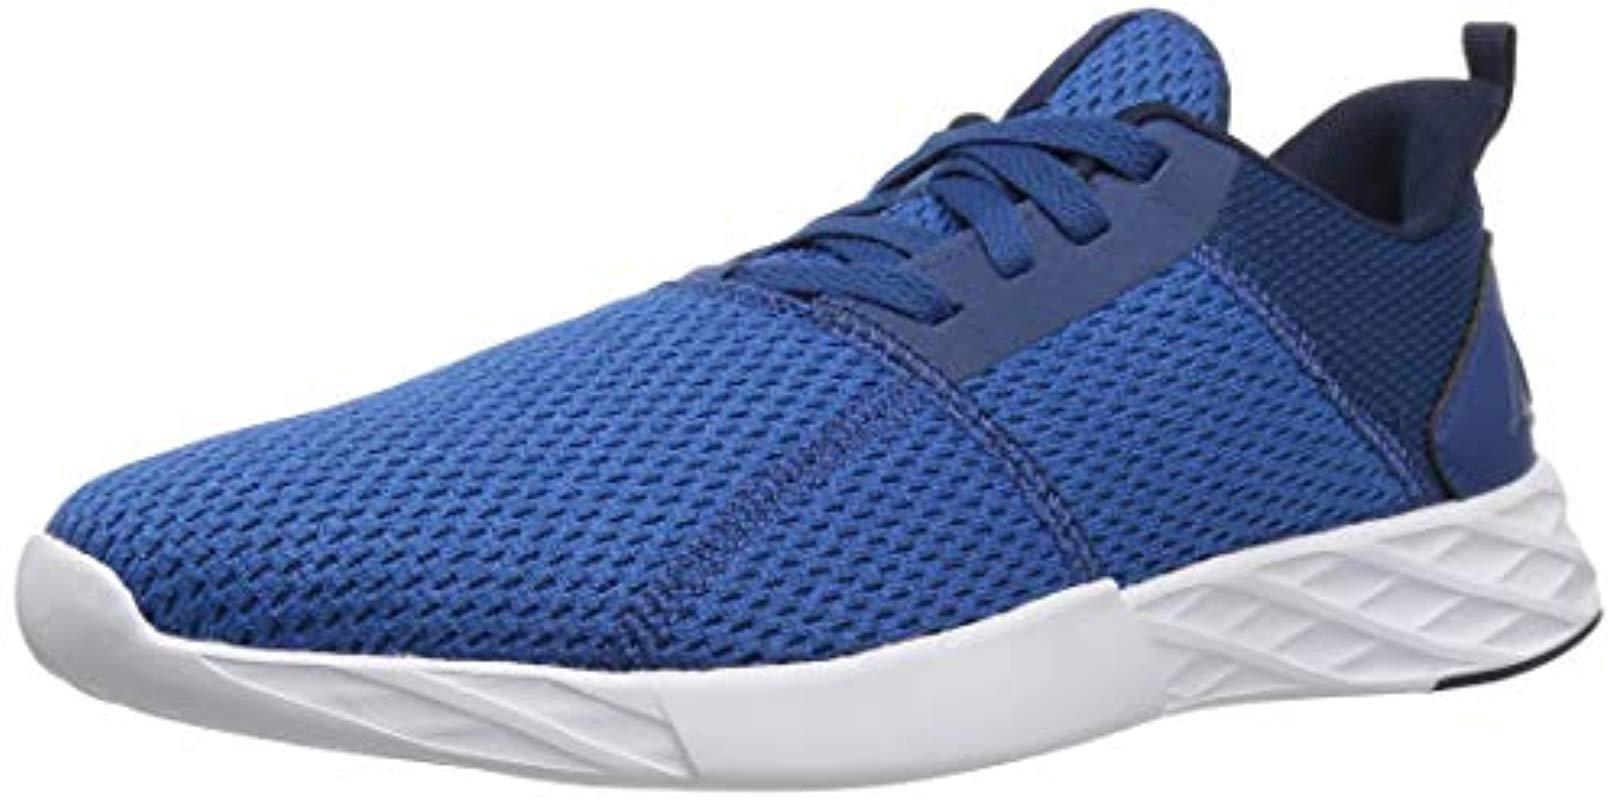 86d8353b657 Lyst - Reebok Astroride Strike Running Shoe in Blue for Men